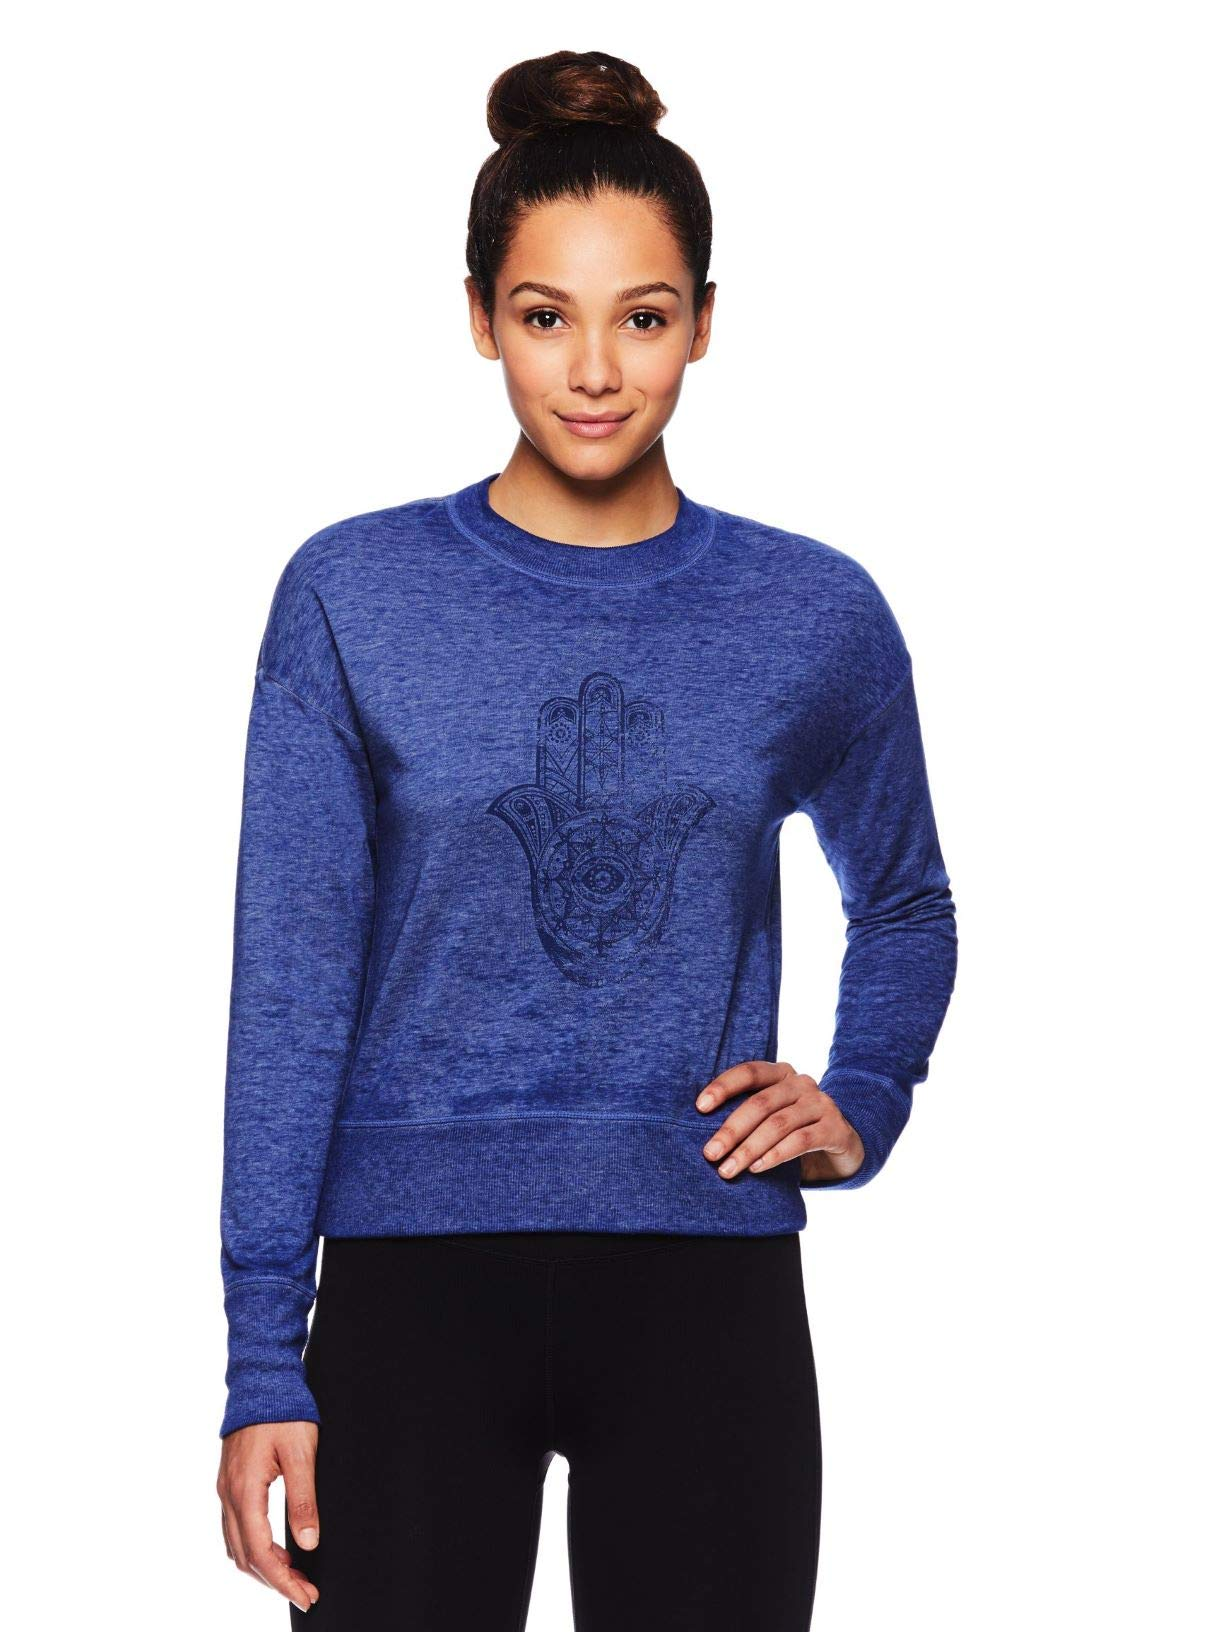 Gaiam Women's Pullover Fleece Yoga Sweatshirt - Long Sleeve Graphic Activewear Sweater - Medieval Blue, X-Small by Gaiam